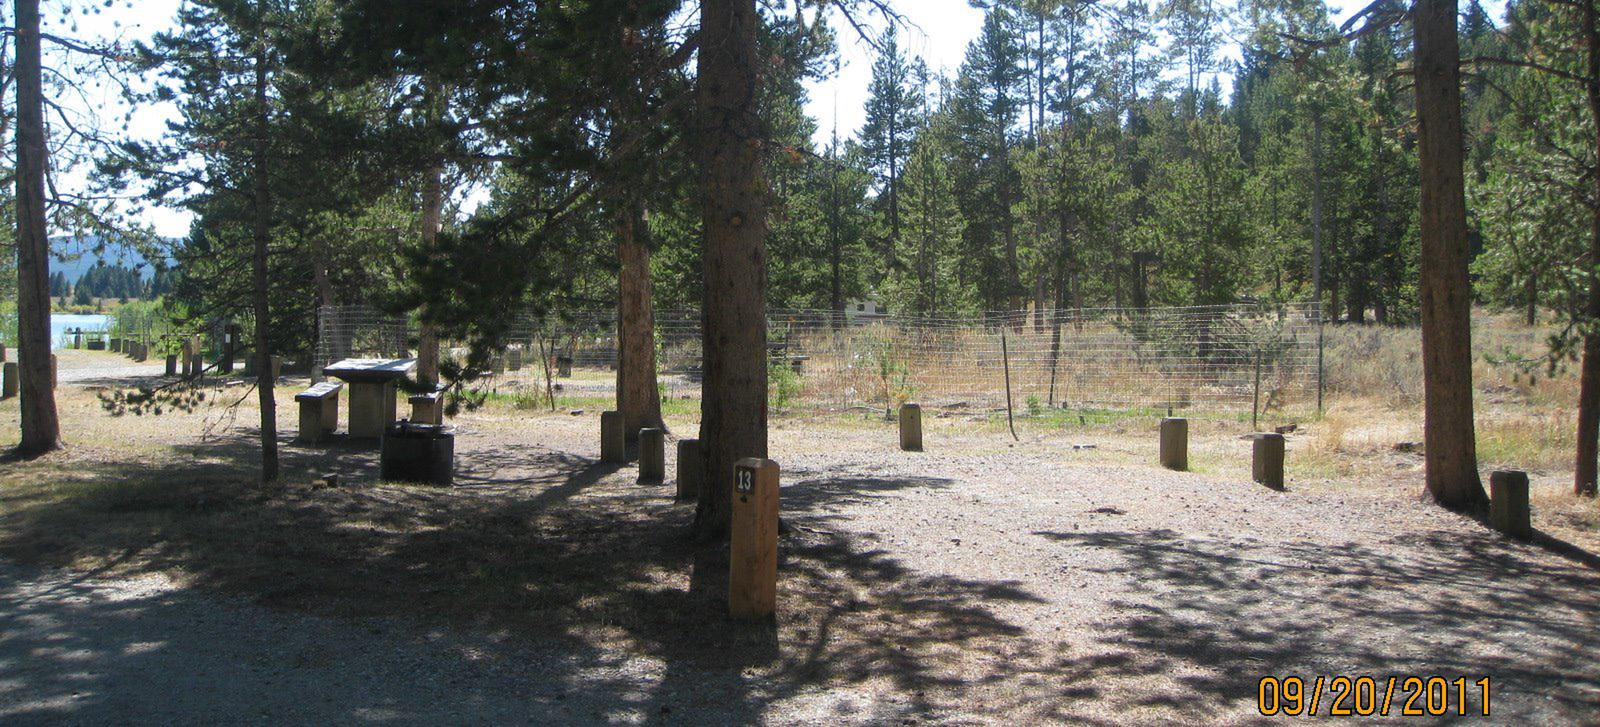 Site 13, campsite surrounded by pine trees, picnic table & fire ringSite 13